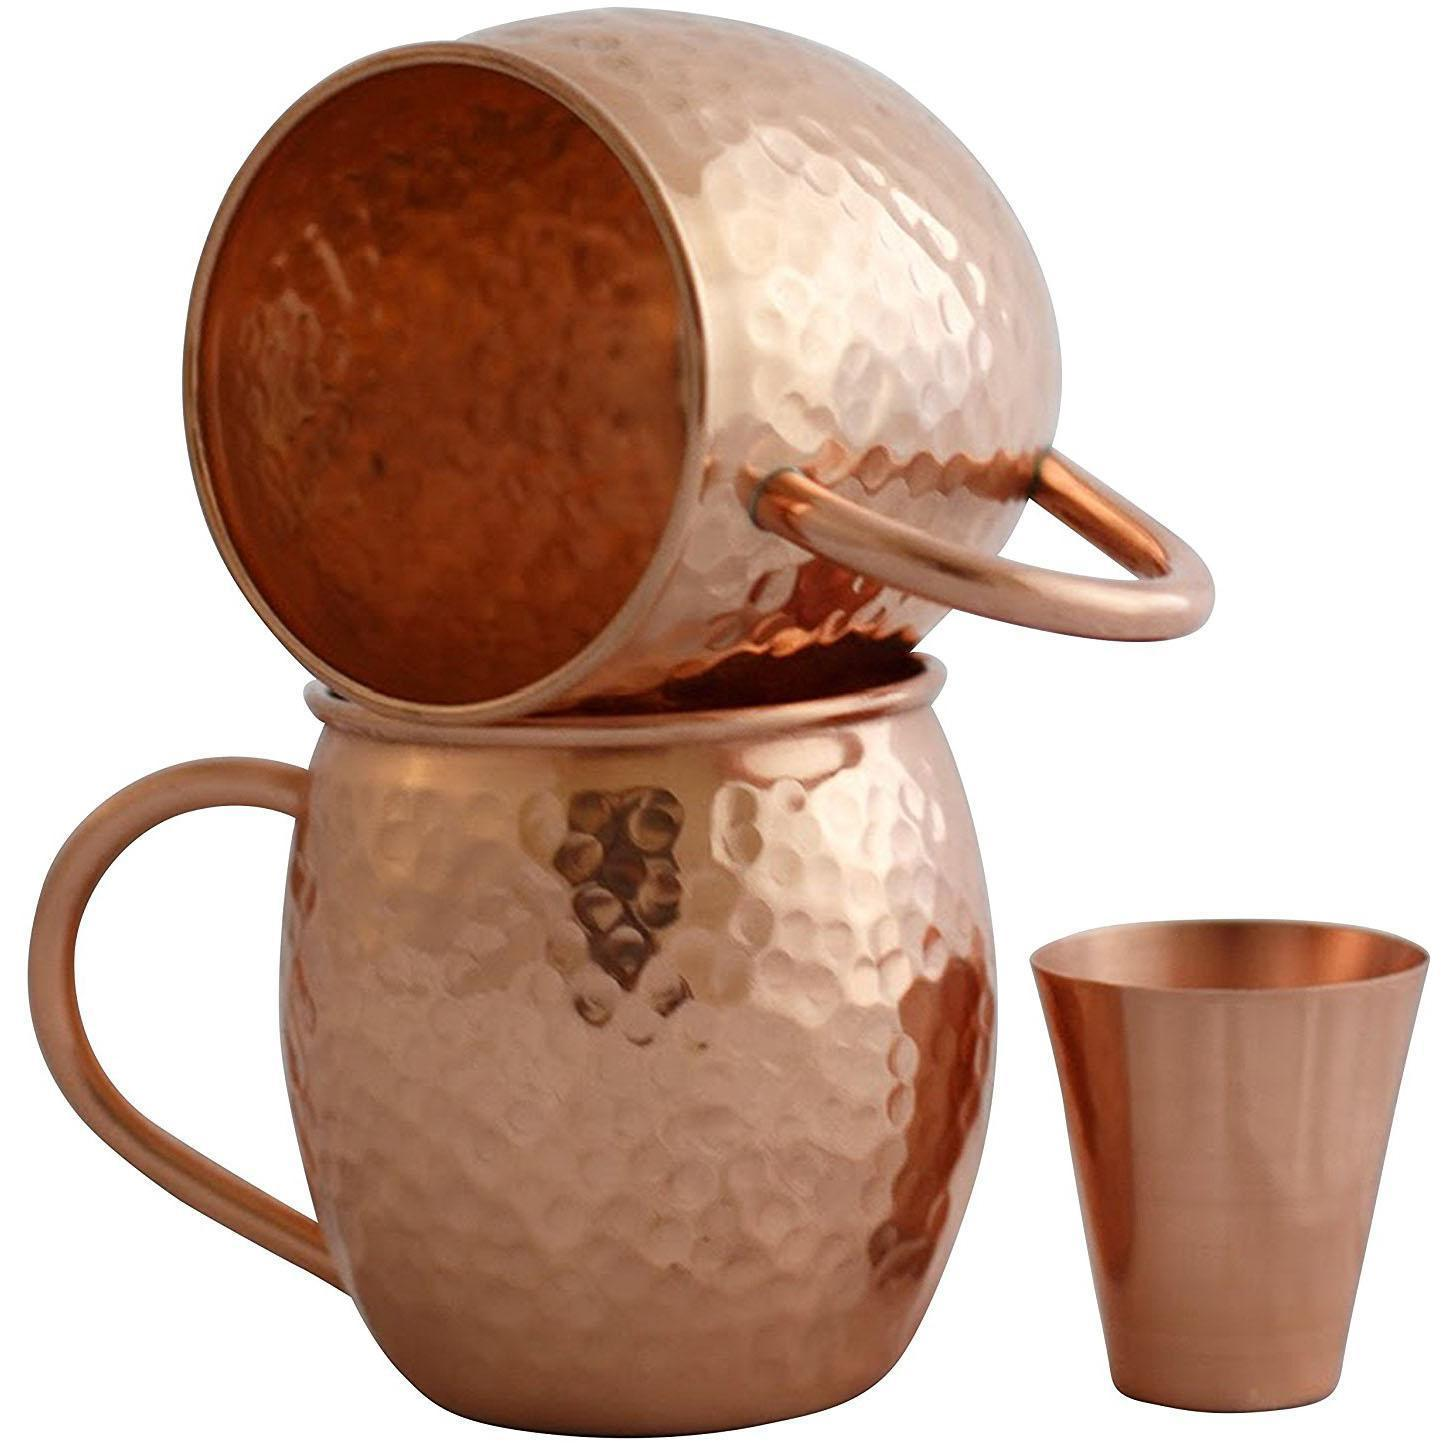 2 Willow Everett Moscow Mule Copper Mugs